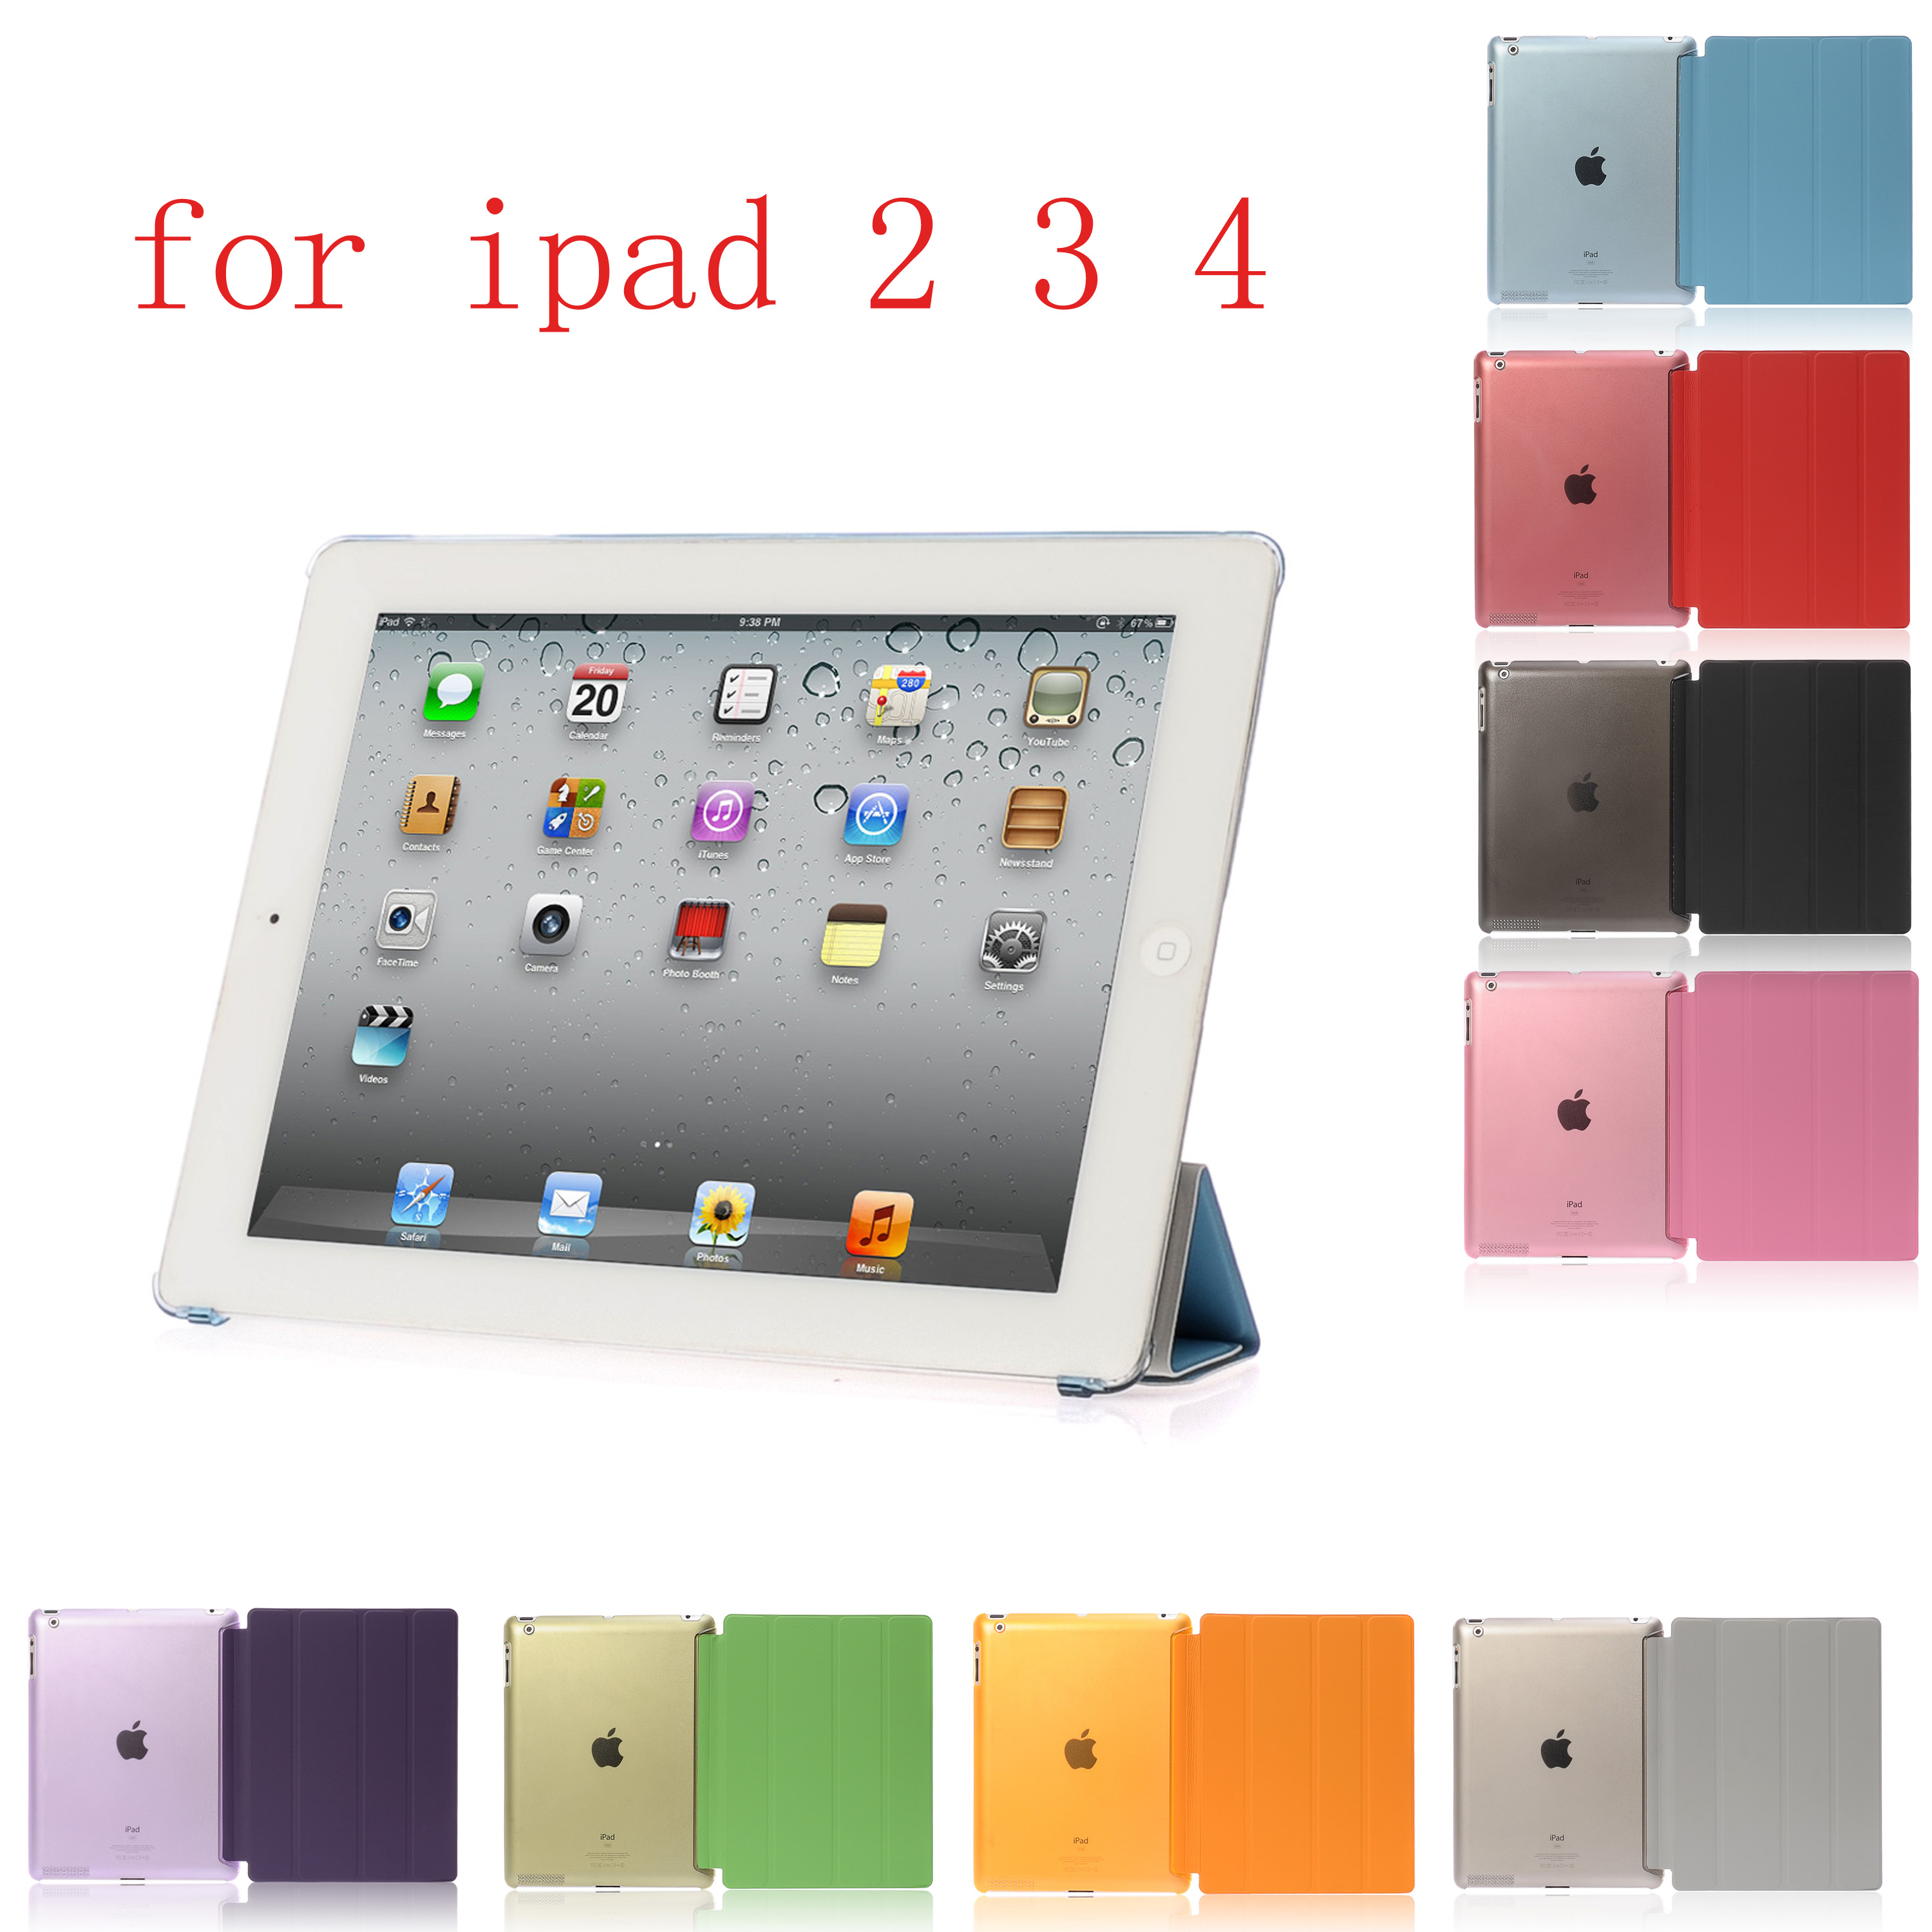 IAMBV Case For IPad 2 3 4 PU Leather Siamese Shell Case For Flip Smart Cover For IPad 2 3 4 Case Auto Sleep/Wake Up